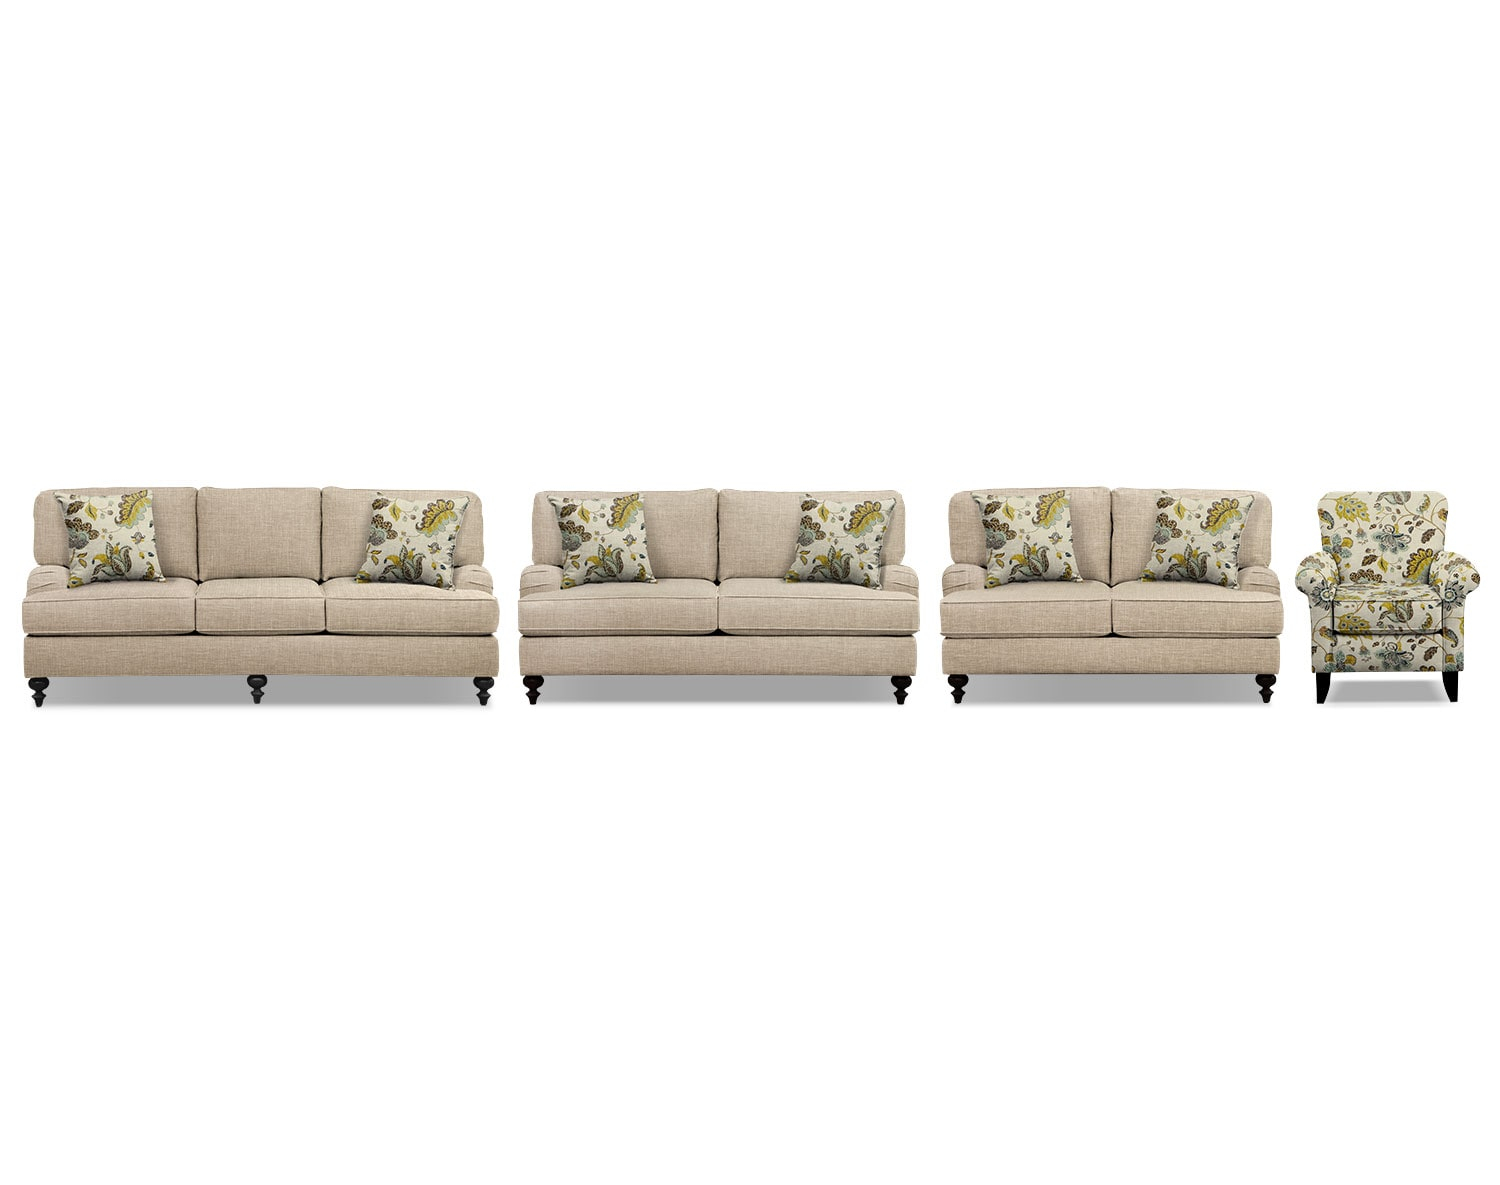 The Avery Taupe Living Room Collection